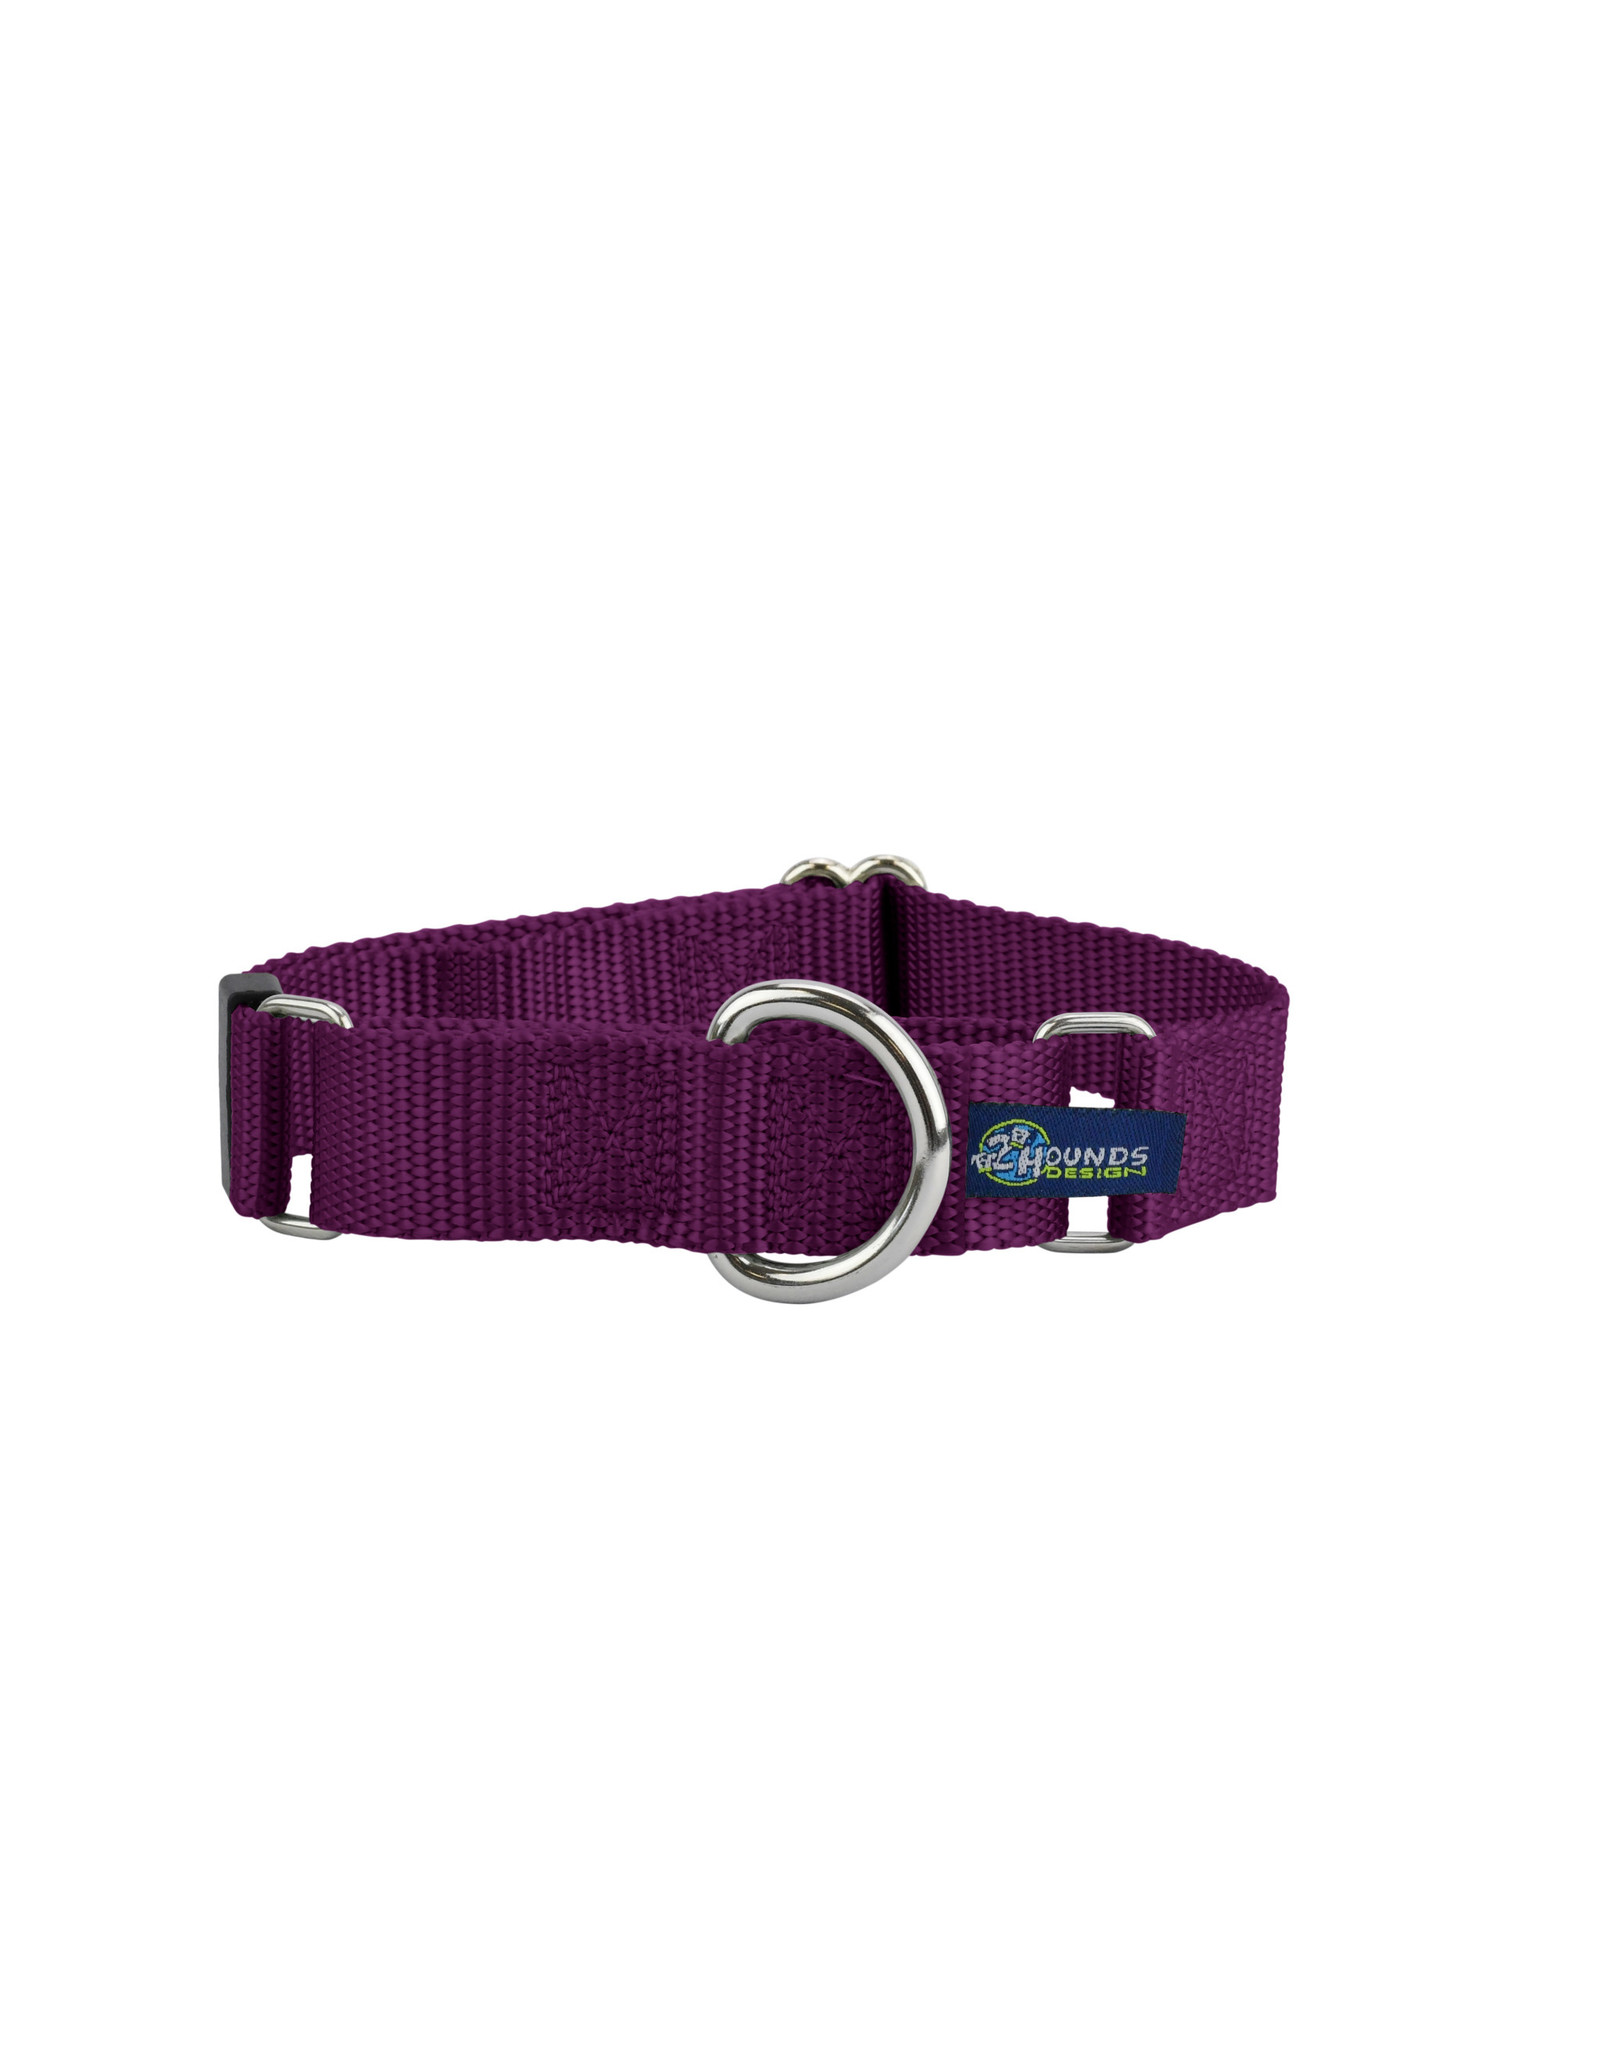 "2 Hounds Design Double loop Martingale: Burgundy, 5/8"" S"